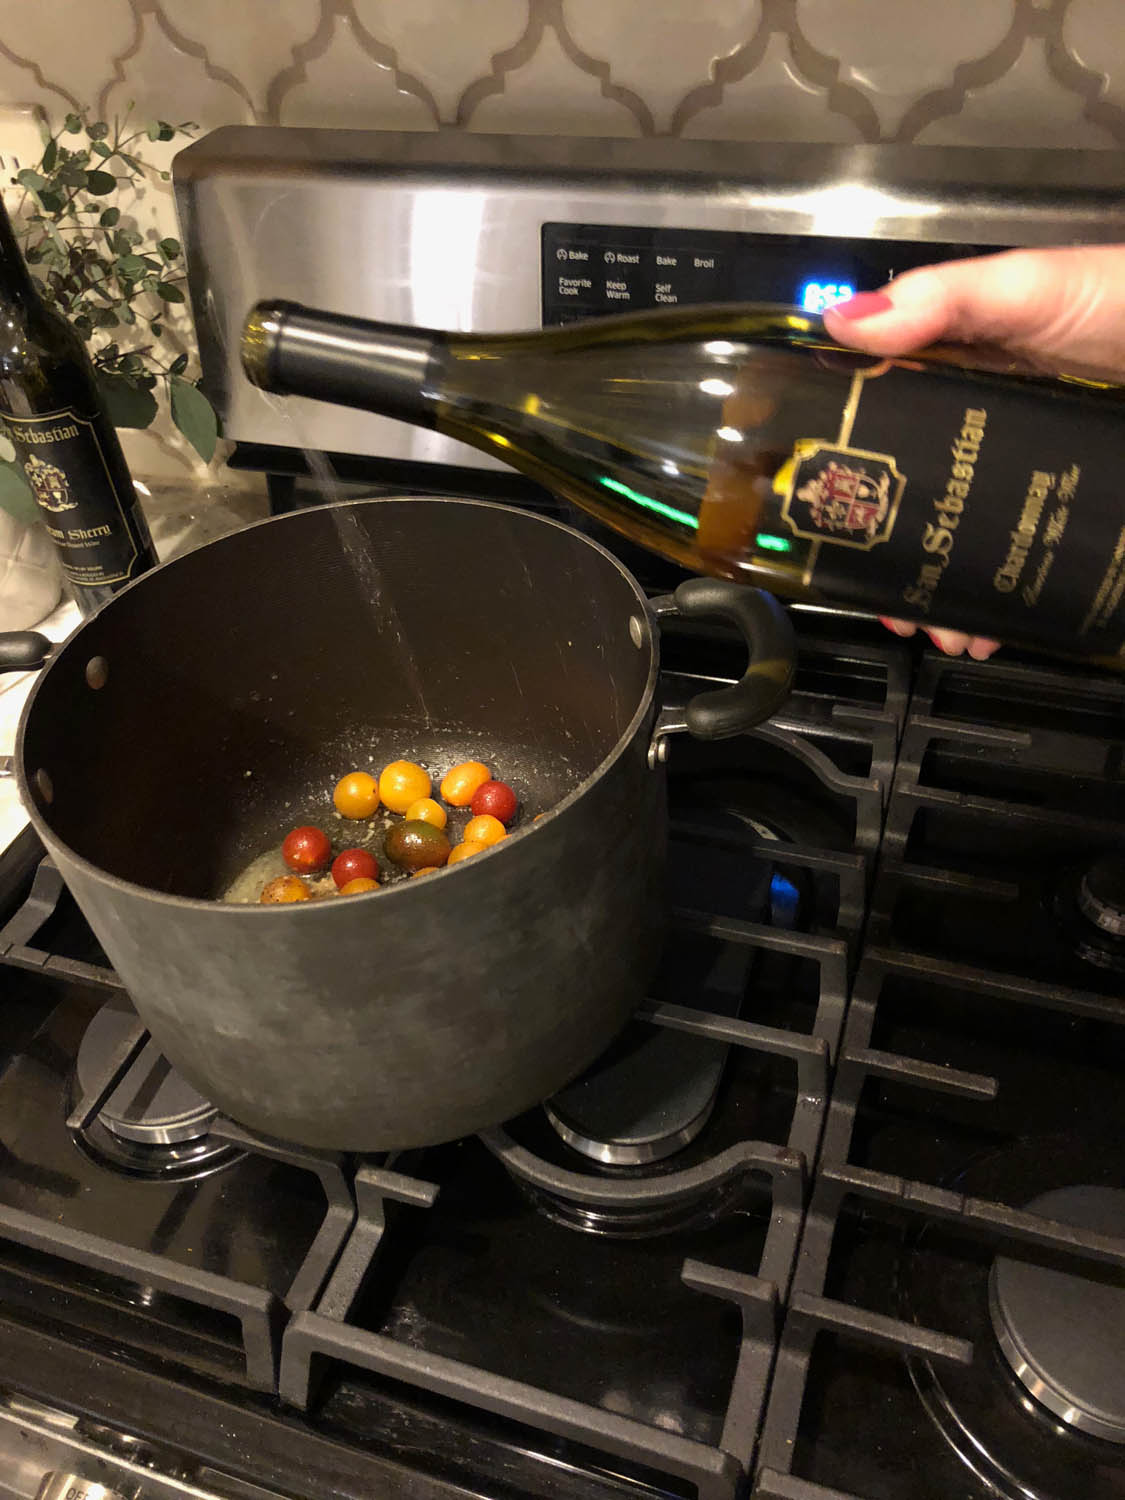 Adding wine to the pot of savory steamed mussels with tomatoes and white wine recipe.